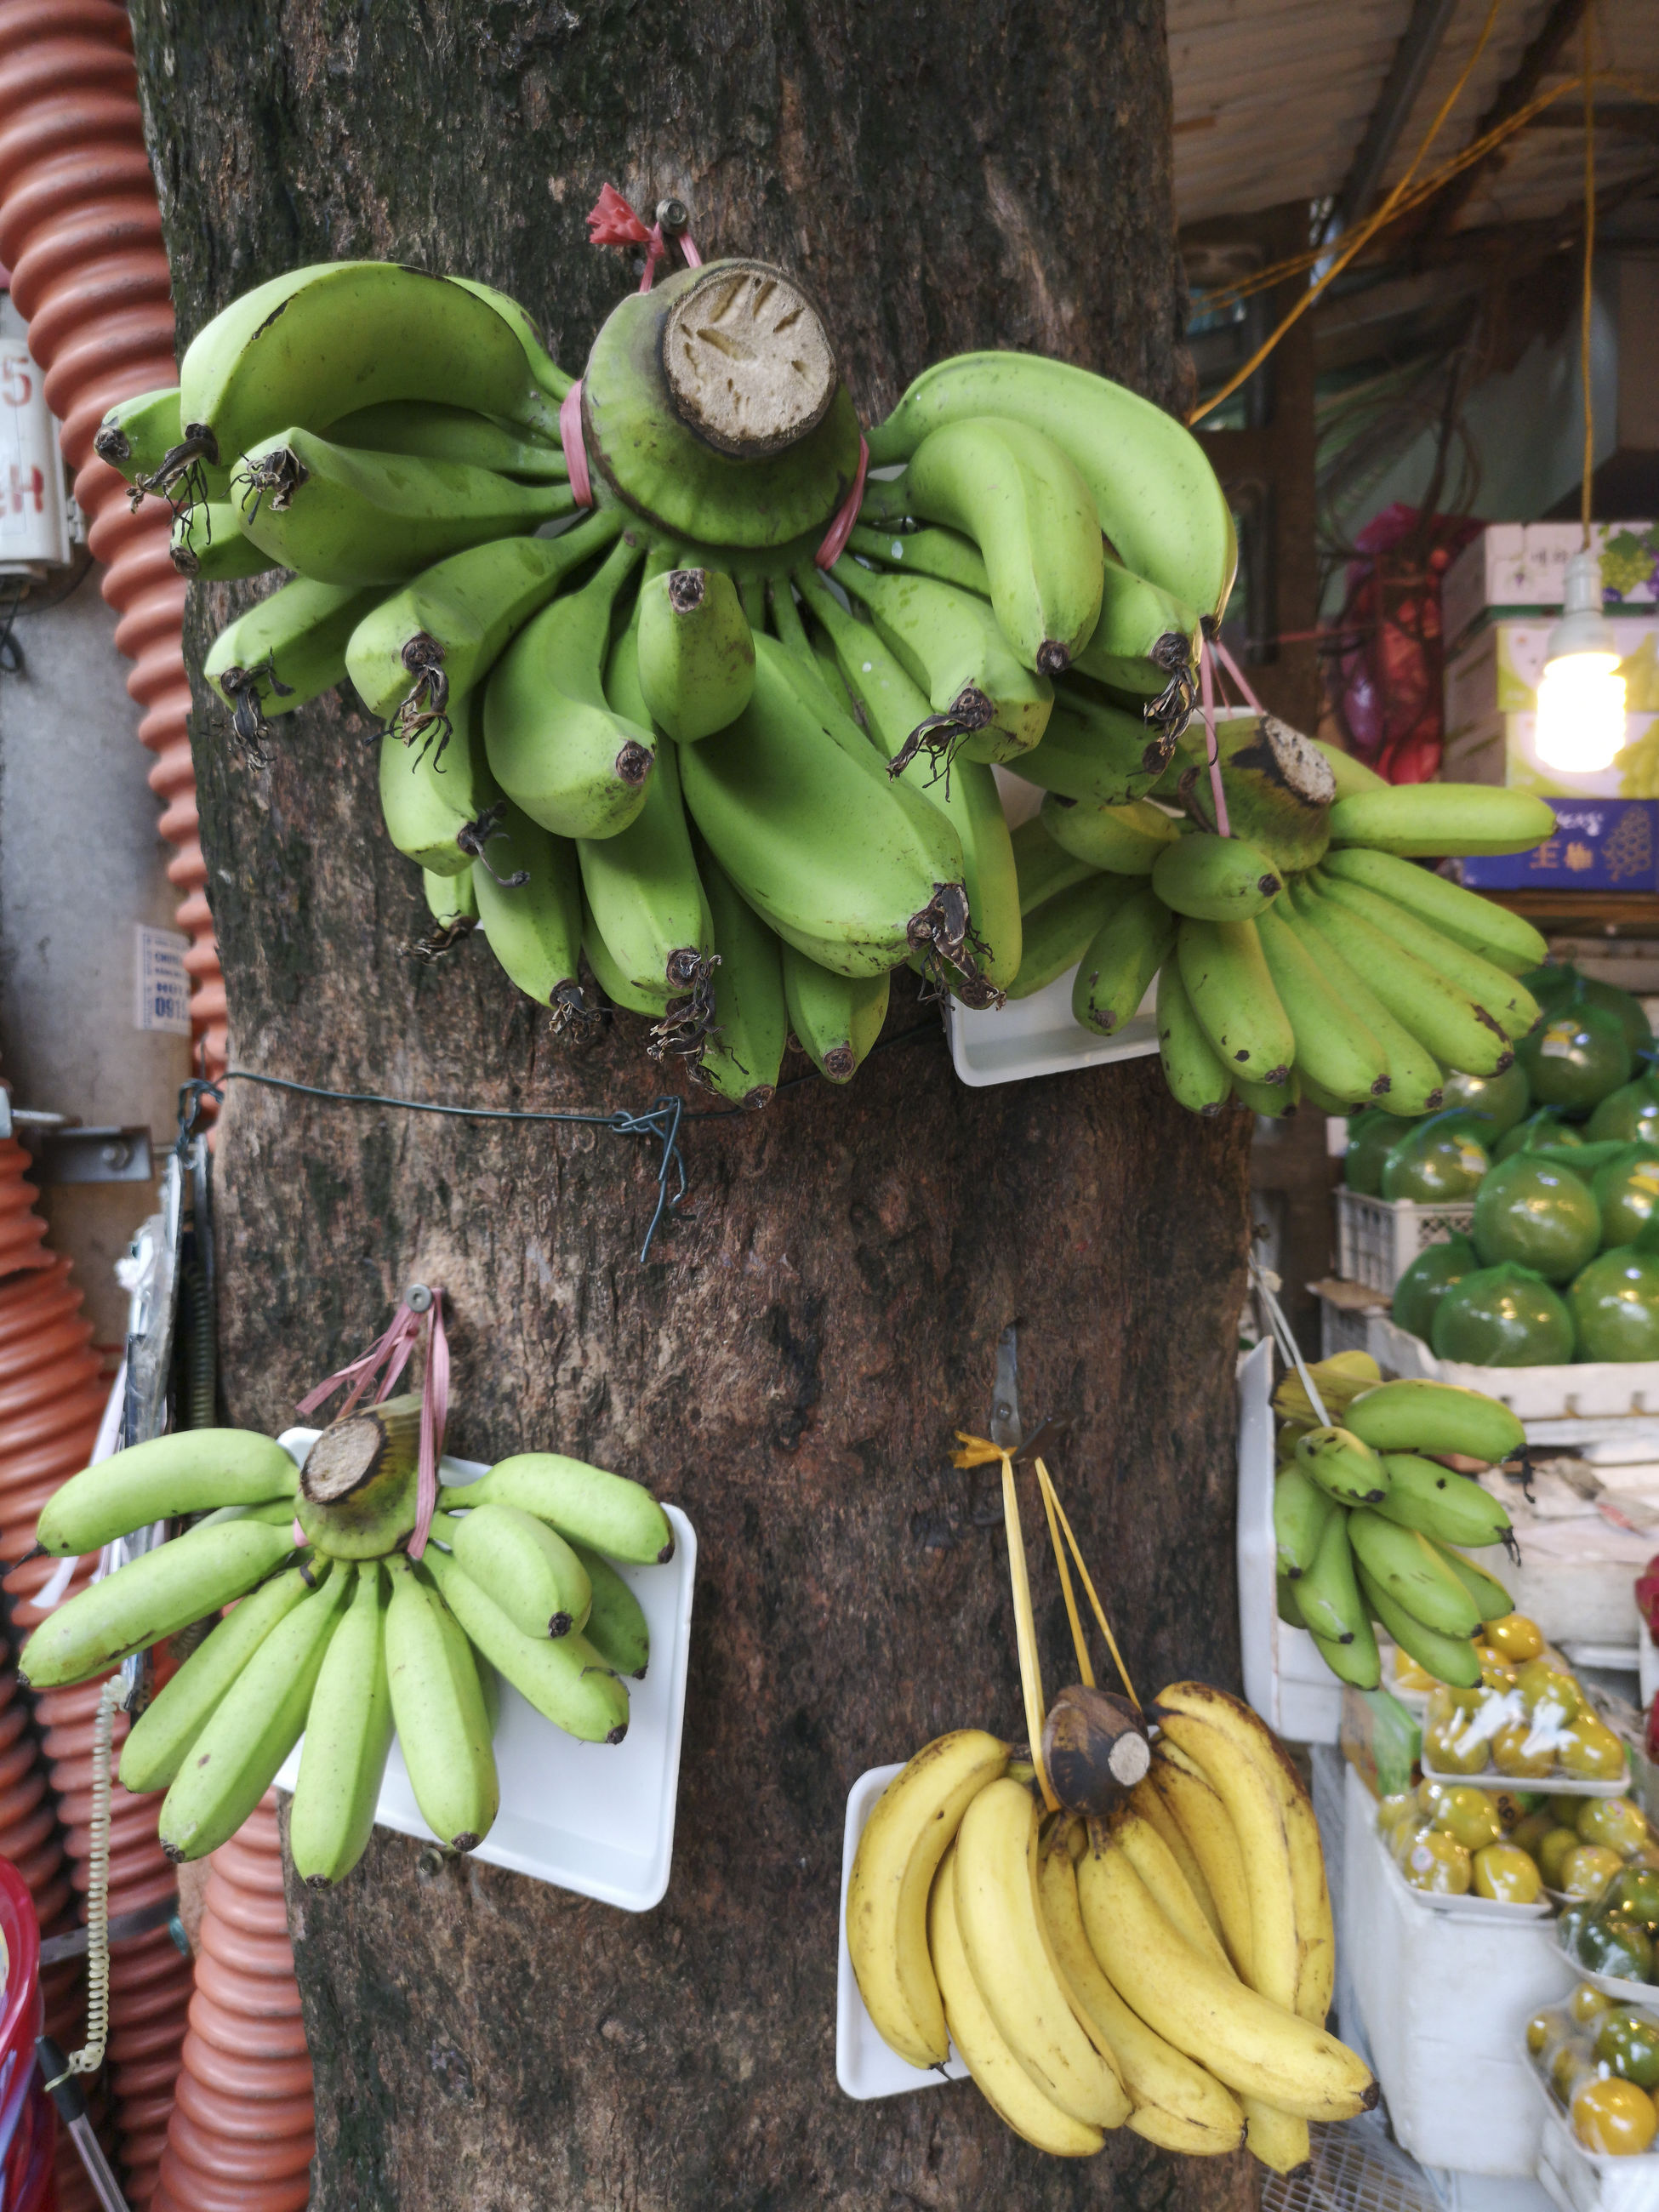 Close-up of bananas for sale at market stall